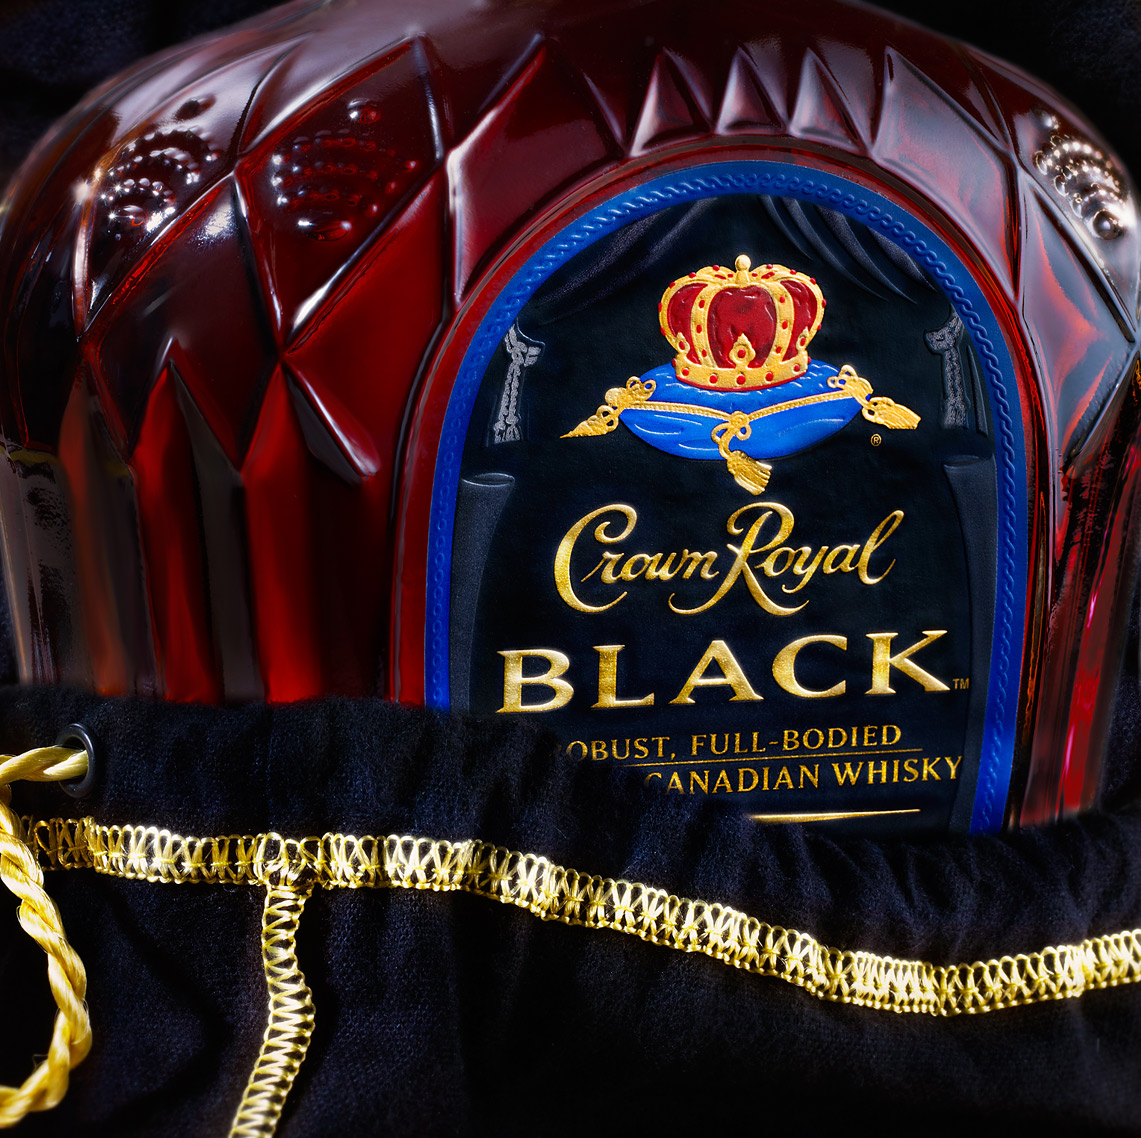 Glasshouse Assignment - David Bishop - Food Photography - Crown Royal Black